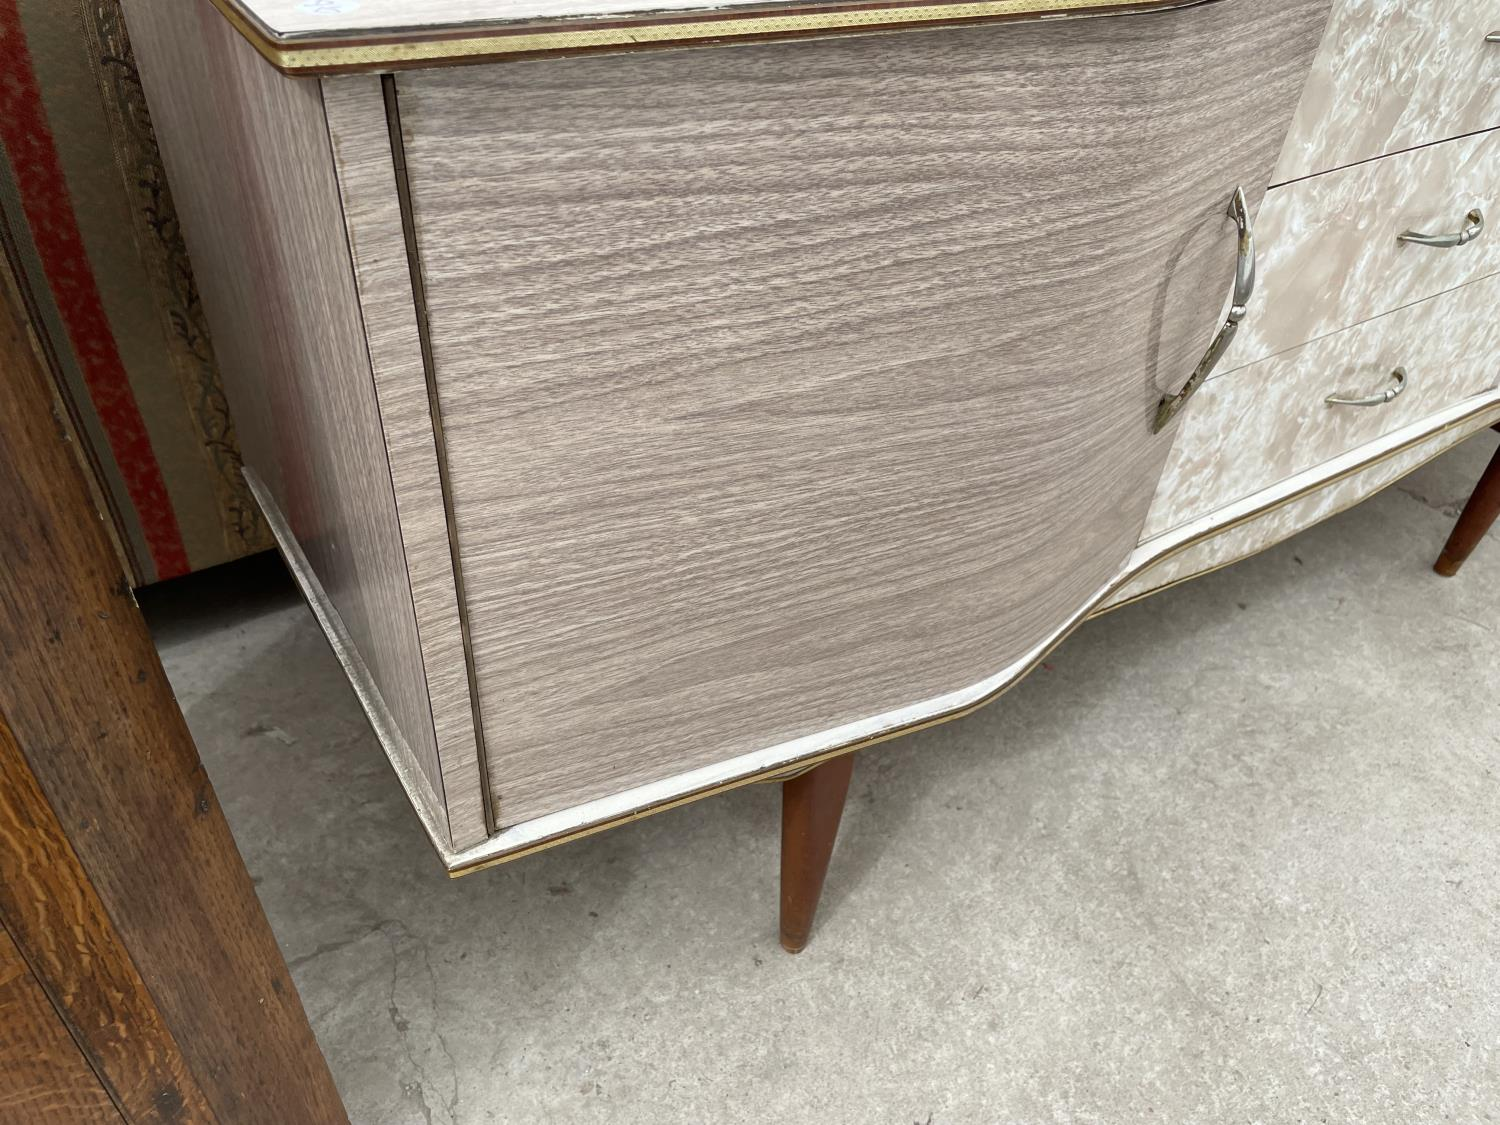 """A MID 20TH CENTURY CREAMY WANUT EFFECT SIDEBOARD, 60"""" WIDE - Image 3 of 5"""